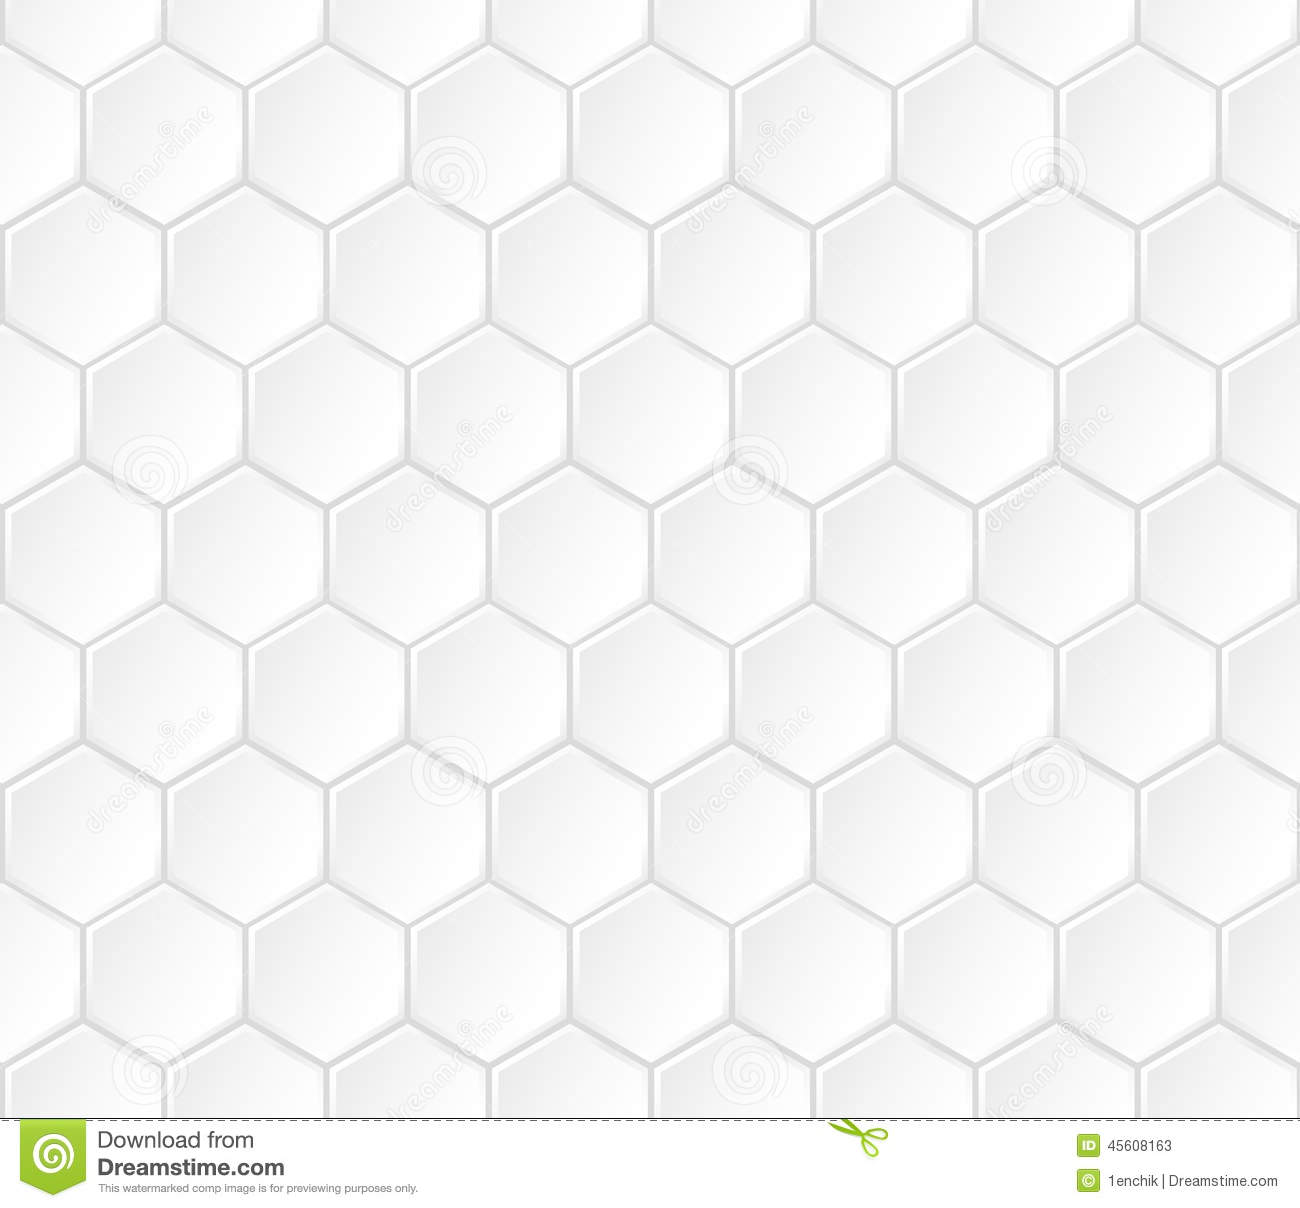 Seamless Hexagon Pattern | www.pixshark.com - Images ...